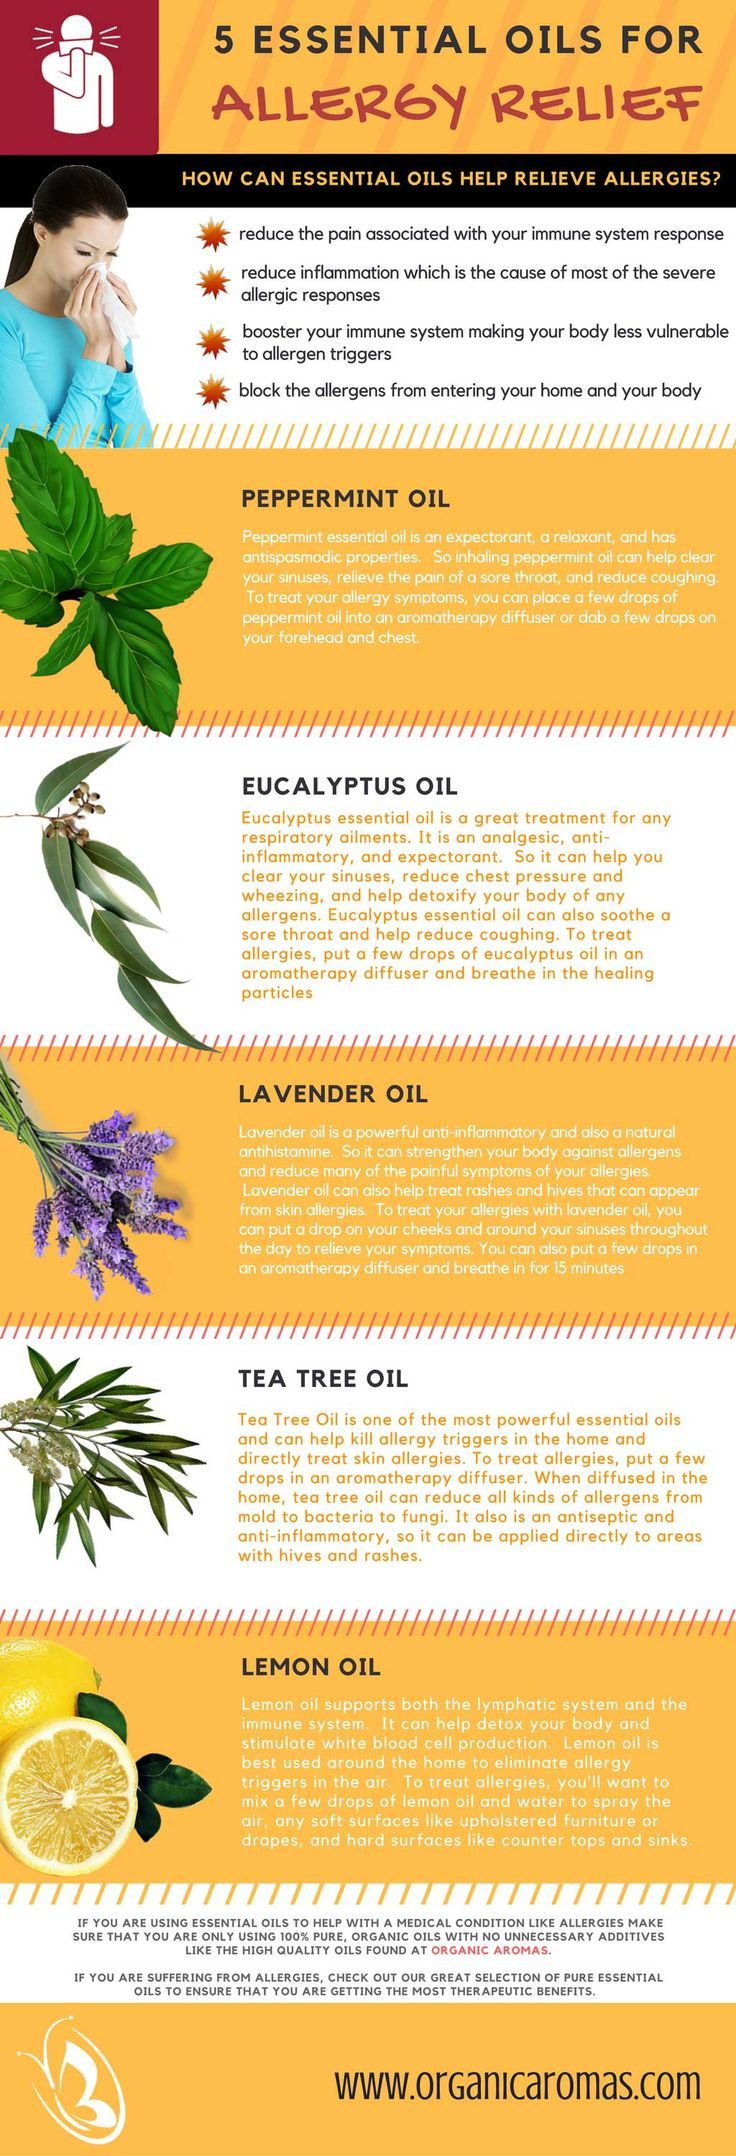 5 Essential Oils For Allergy Relief - #OrganicAromas  Allergy sufferers know that an allergy attack can be absolutely miserable.  You can spend days, even weeks, walking around in a fog, feeling like you have the flu.  So you want relief and fast.  One of the best ways to treat allergies is with essential oils.  They are safe, natural, and most importantly, incredibly effective at reducing the symptoms of an allergic response.